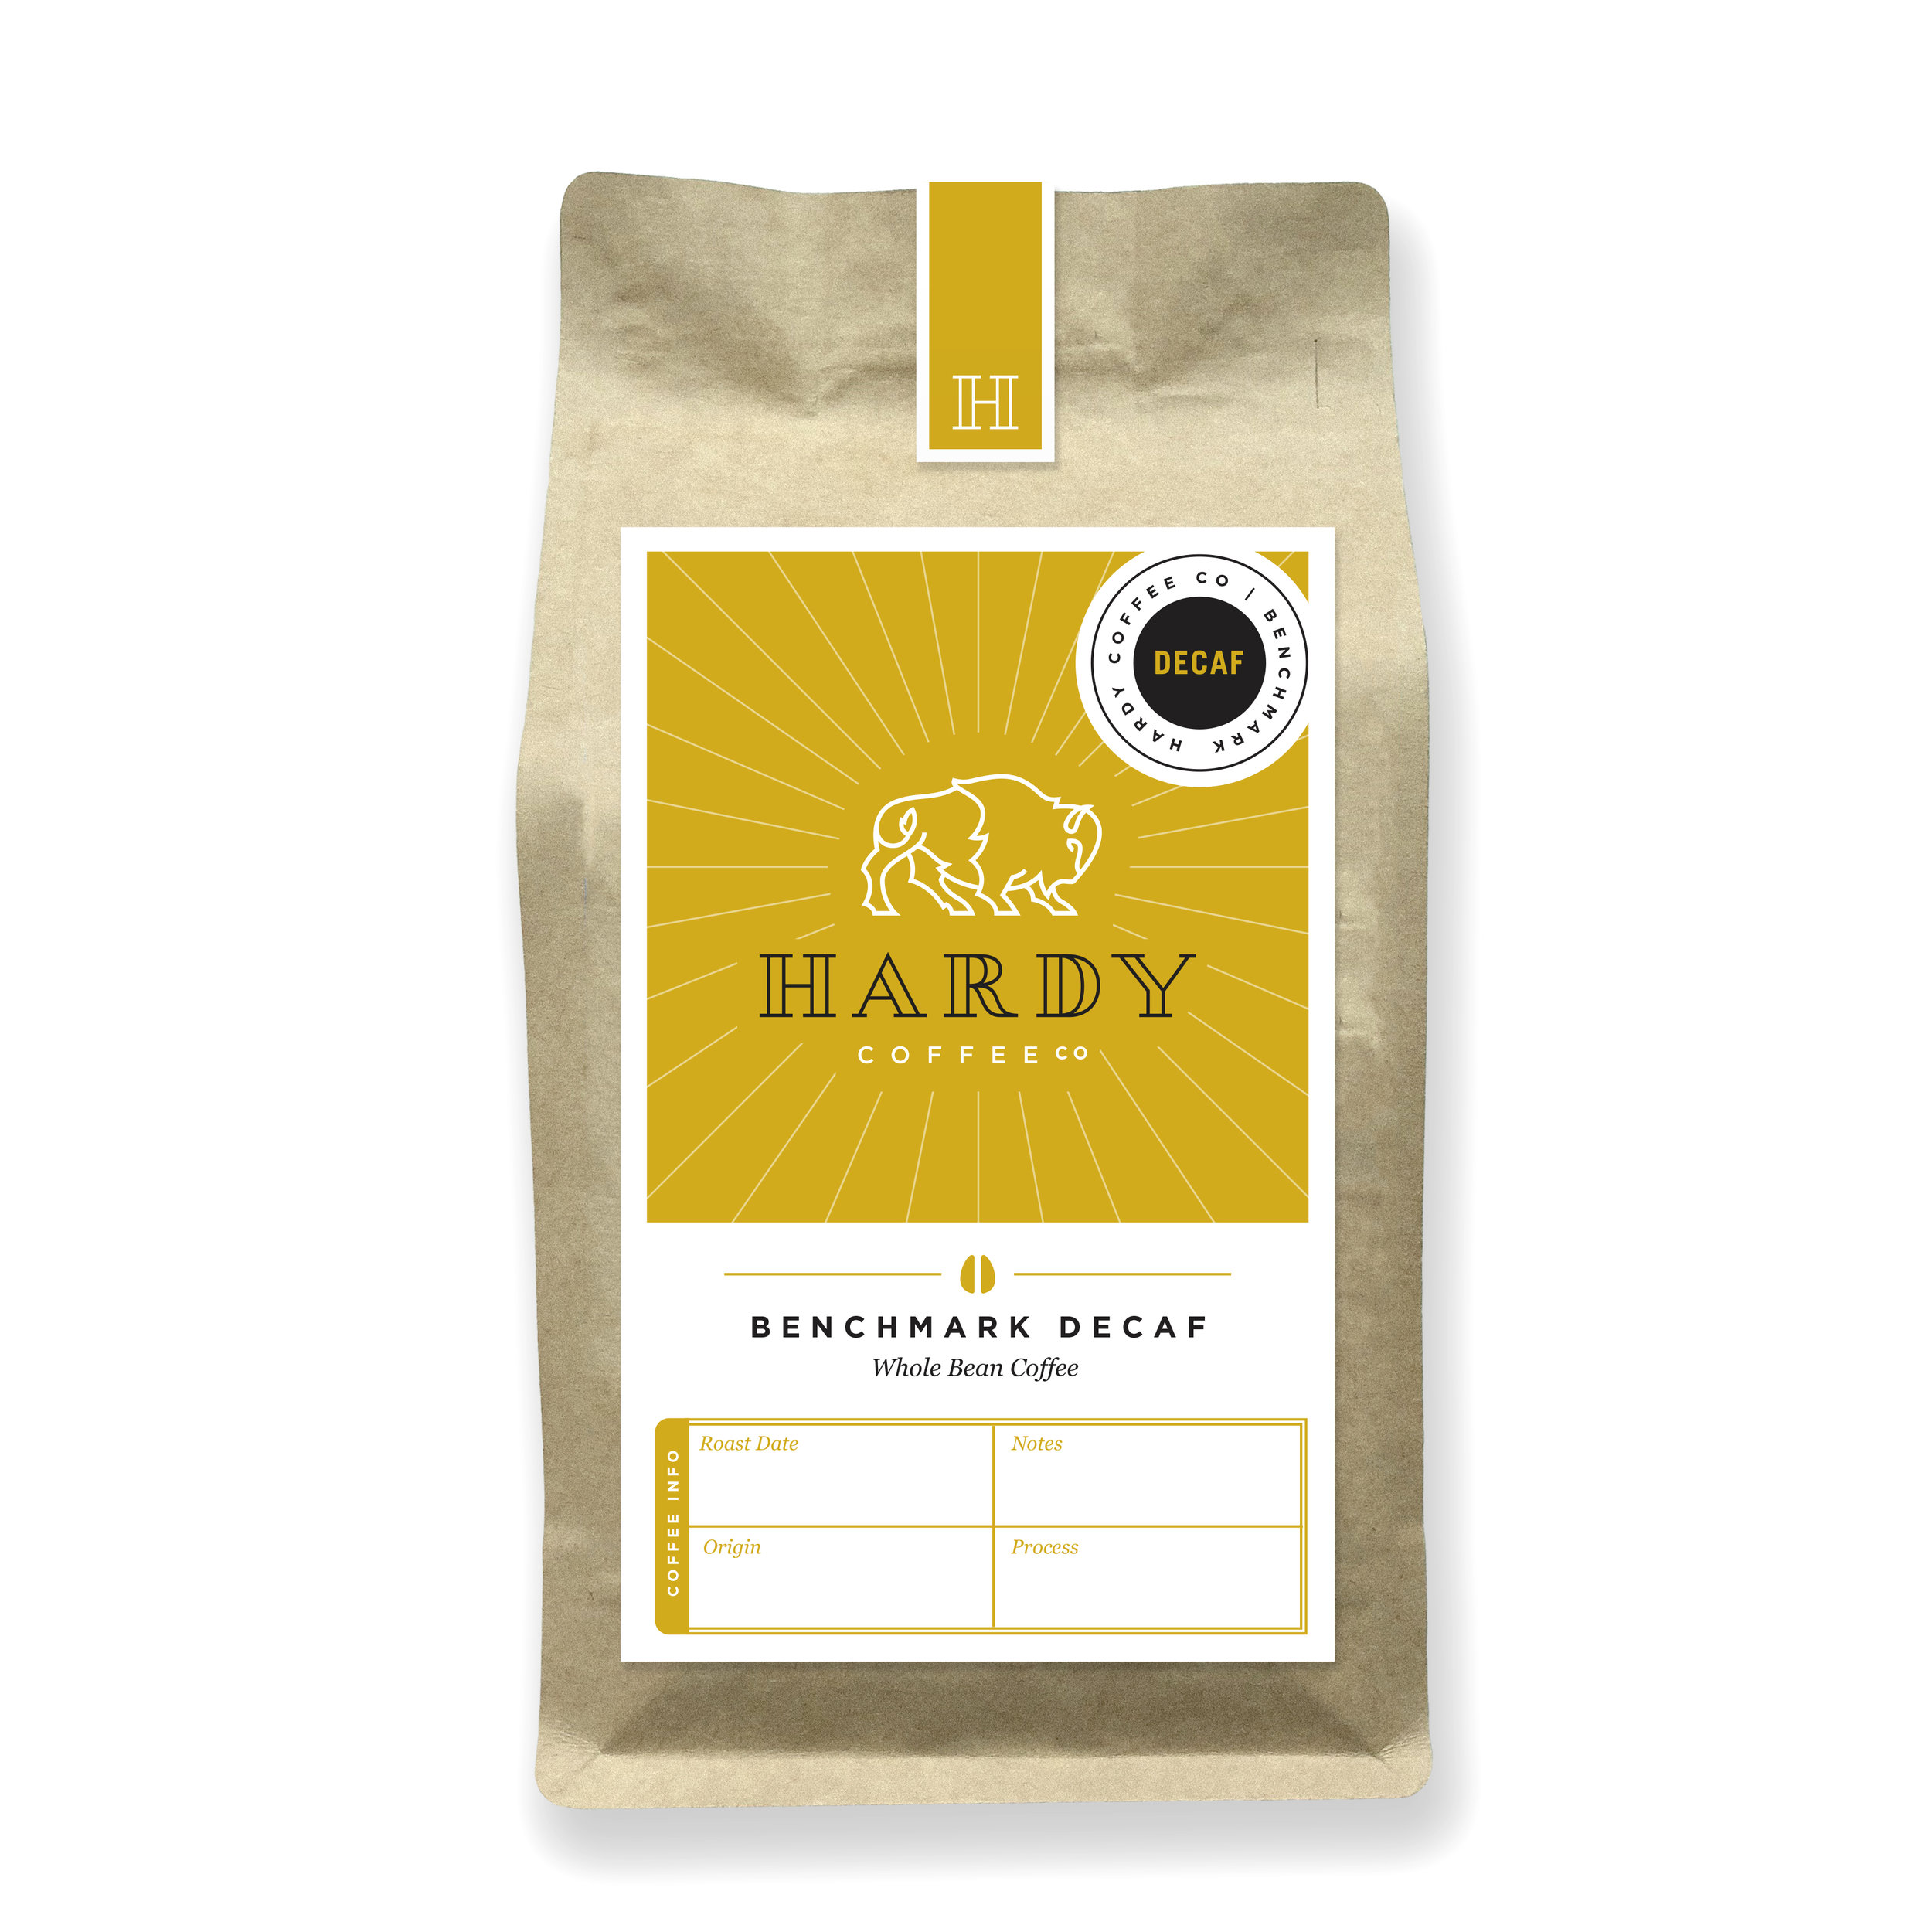 hardy_coffee_package_decaf_2019.jpg